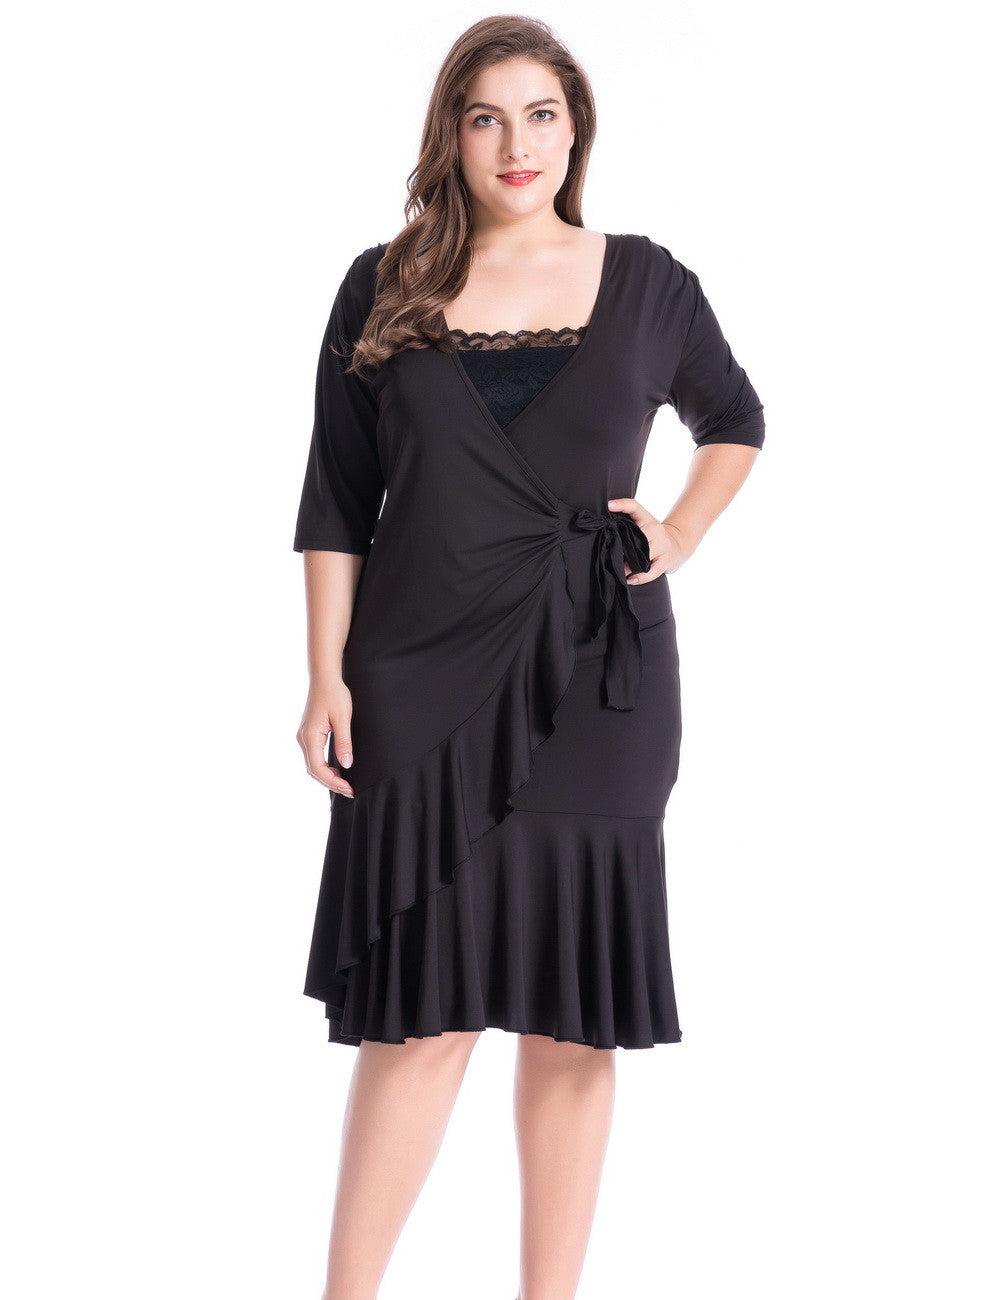 Chicwe Women's Plus Size Whimsy Wrap Dress 1X-4X